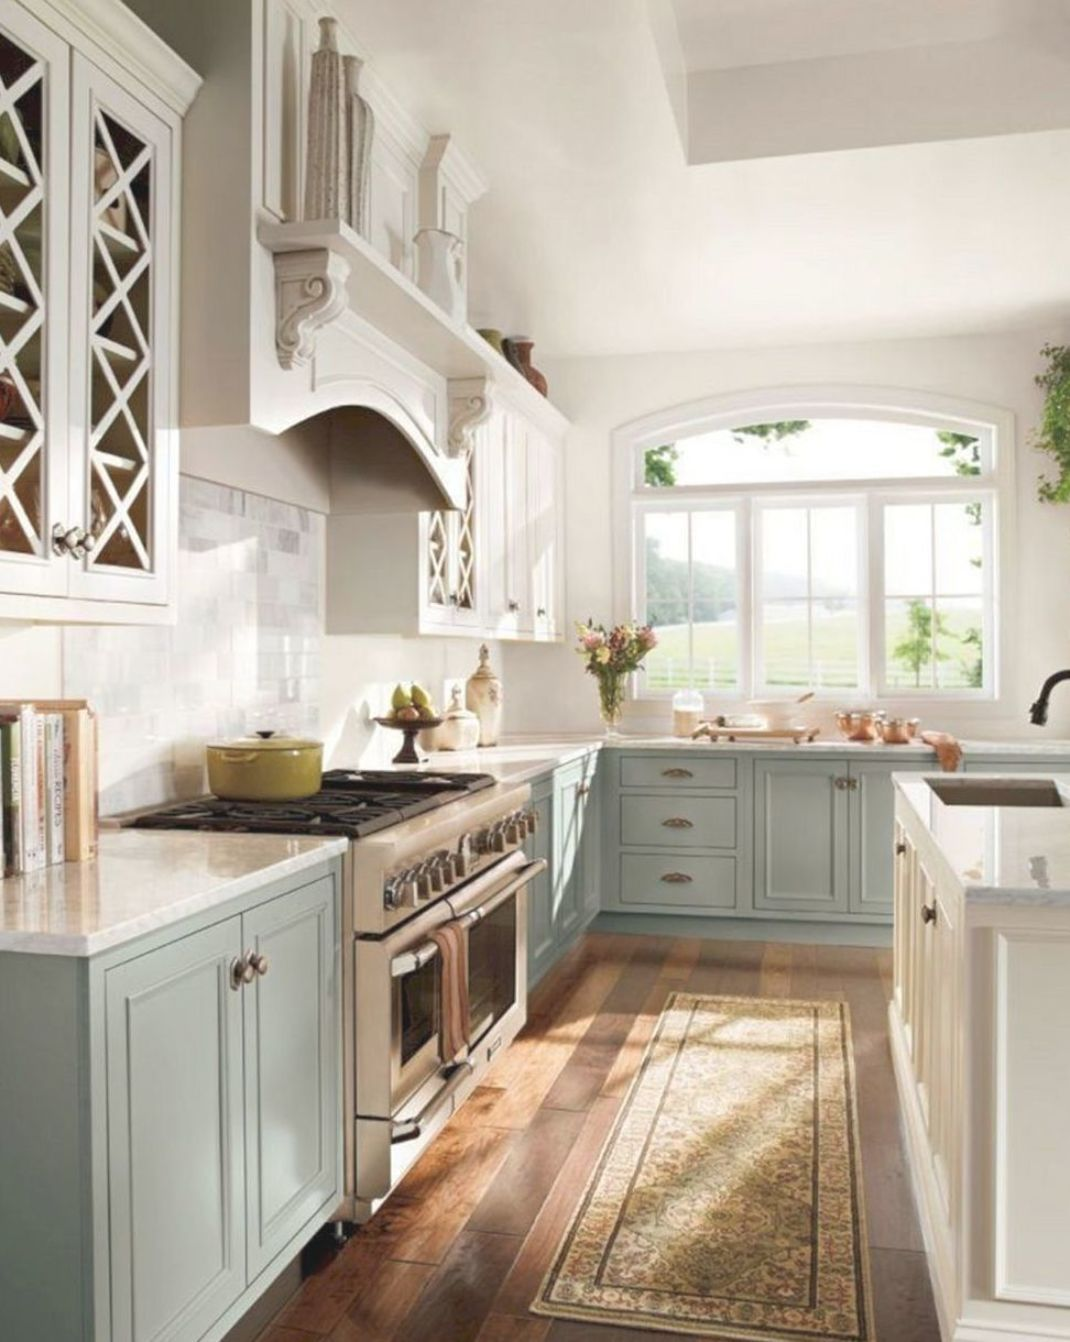 Pin By Christos On Dream Kitchen Country Kitchen Designs Kitchen Cabinet Design French Country Kitchens